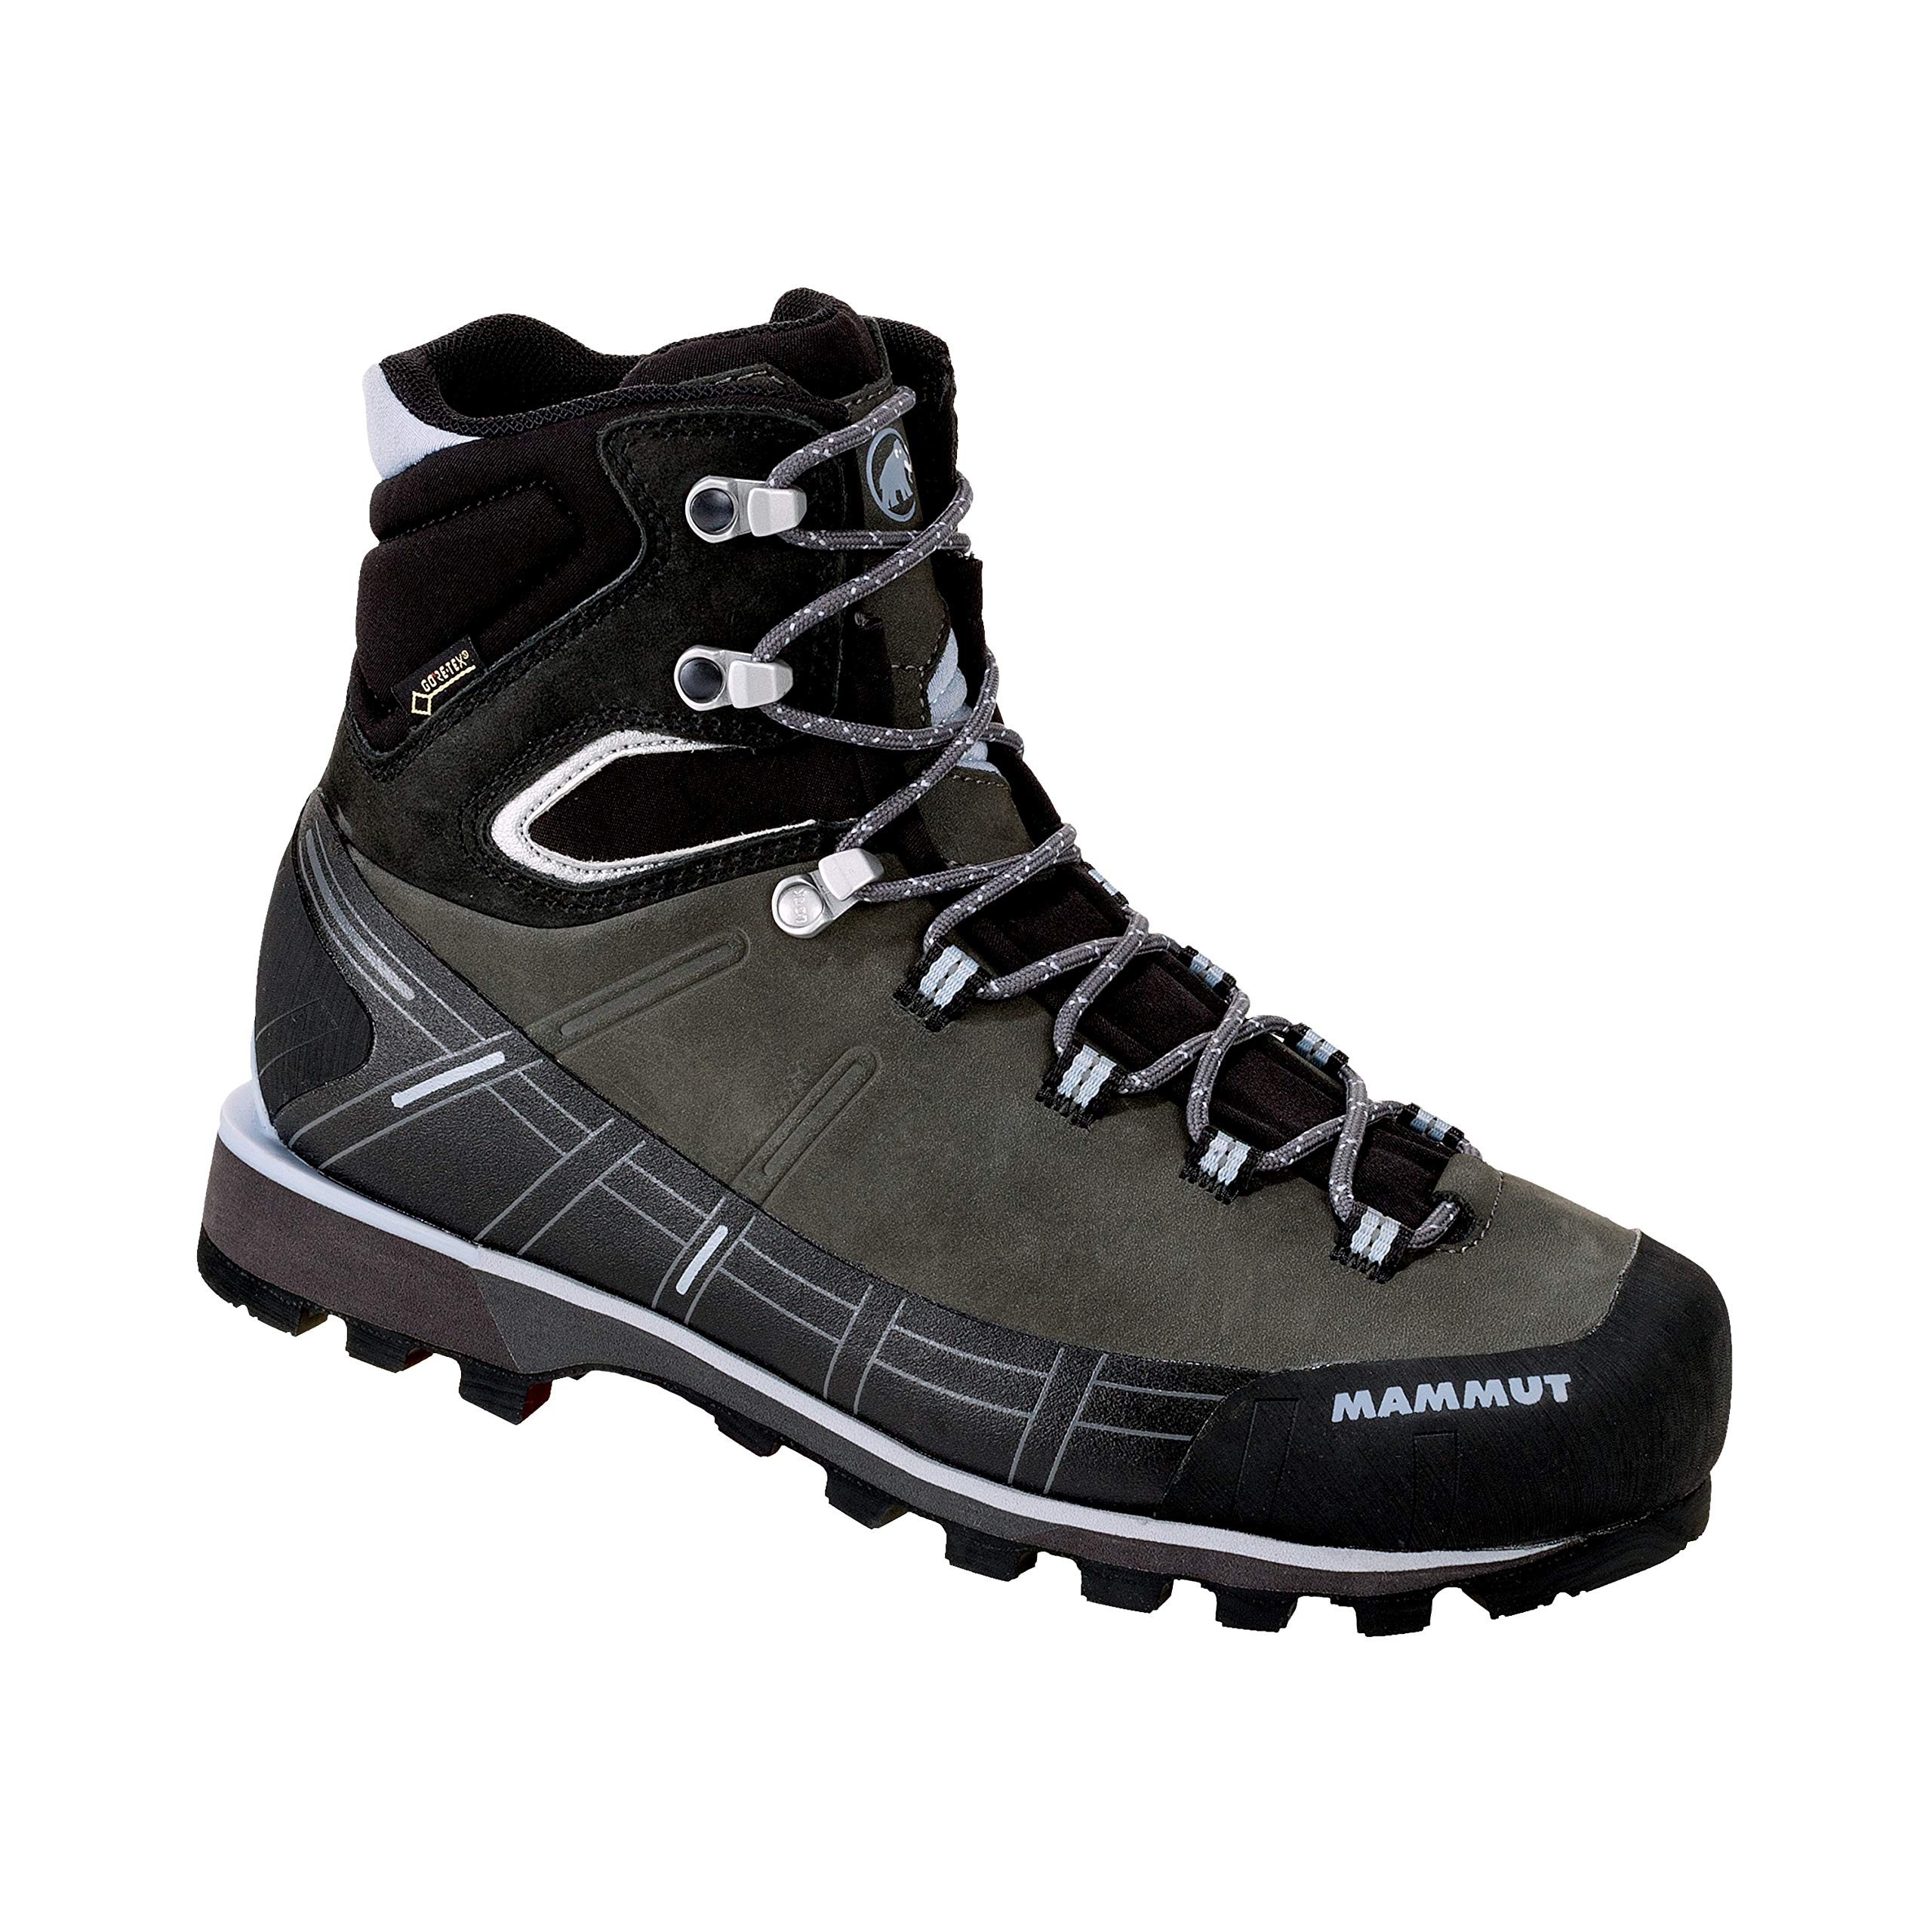 Mammut Women's Kento High GTX Mountaineering Boots; Size: 8.5 - Graphite-Black